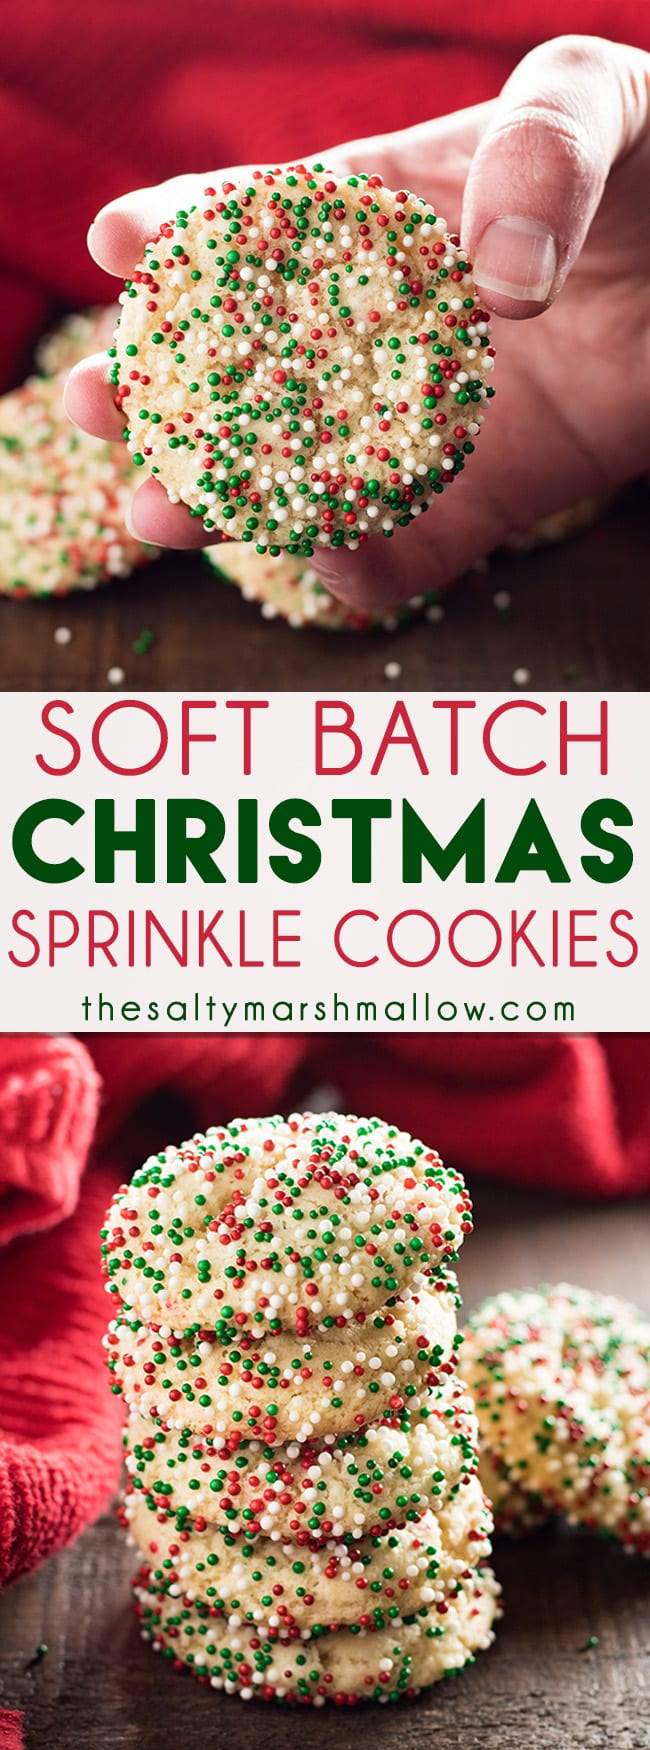 Christmas Sprinkle Cookies - Ingredients1 Stick butter softened1/4 Cup cream cheese softened1 1/2 Cups granulated sugar2 Large eggs1 Teaspoon vanilla extract1 Teaspoon almond extract2 1/2 Cups all purpose flour2 Teaspoons corn starch1 Teaspoon baking soda1/4 Teaspoon salt1 Cup sprinkles nonpareilsInstructionsIn bowl of stand mixer fitted with paddle attachment, or a large bowl using hand mixer, cream together the butter, cream cheese, sugar, eggs, and extracts until light and fluffy. About 5 minutes.Scrape down the sides of the bowl with a spatula. Add the flour, corn starch, baking soda, and salt. Mix together on low/medium speed for one minute, until combined.Refrigerate dough for two hours before baking.When dough is done chilling, preheat oven to 350 degrees. Line two baking sheets with parchment paper, or spray with non-stick cooking spray.Pour the sprinkles into a medium bowl, and roll tablespoon sized balls of dough into the sprinkles.Place the cookies onto prepared baking sheet, spacing 2 inches apart.Bake for 9-12 minutes. These should not turn golden brown, and will still look wet when they come out of the oven.Allow cookies to cool on baking sheet for 3-5 minutes before moving to a wire rack to cool completely.